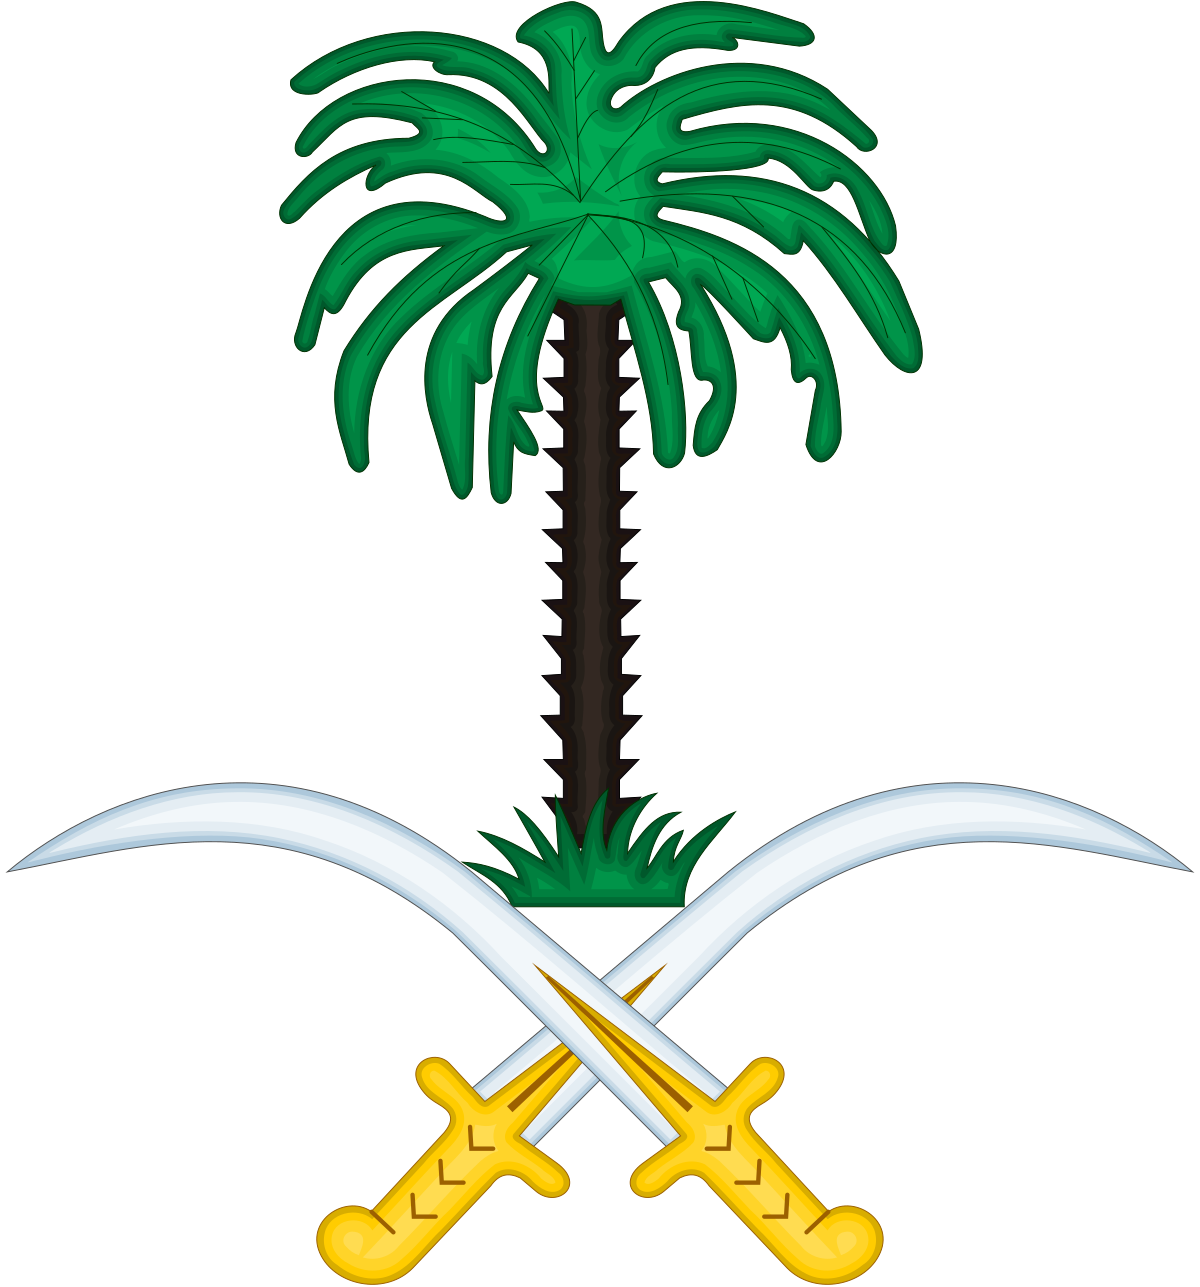 Emblem of saudi arabia. Fear clipart stressed female student